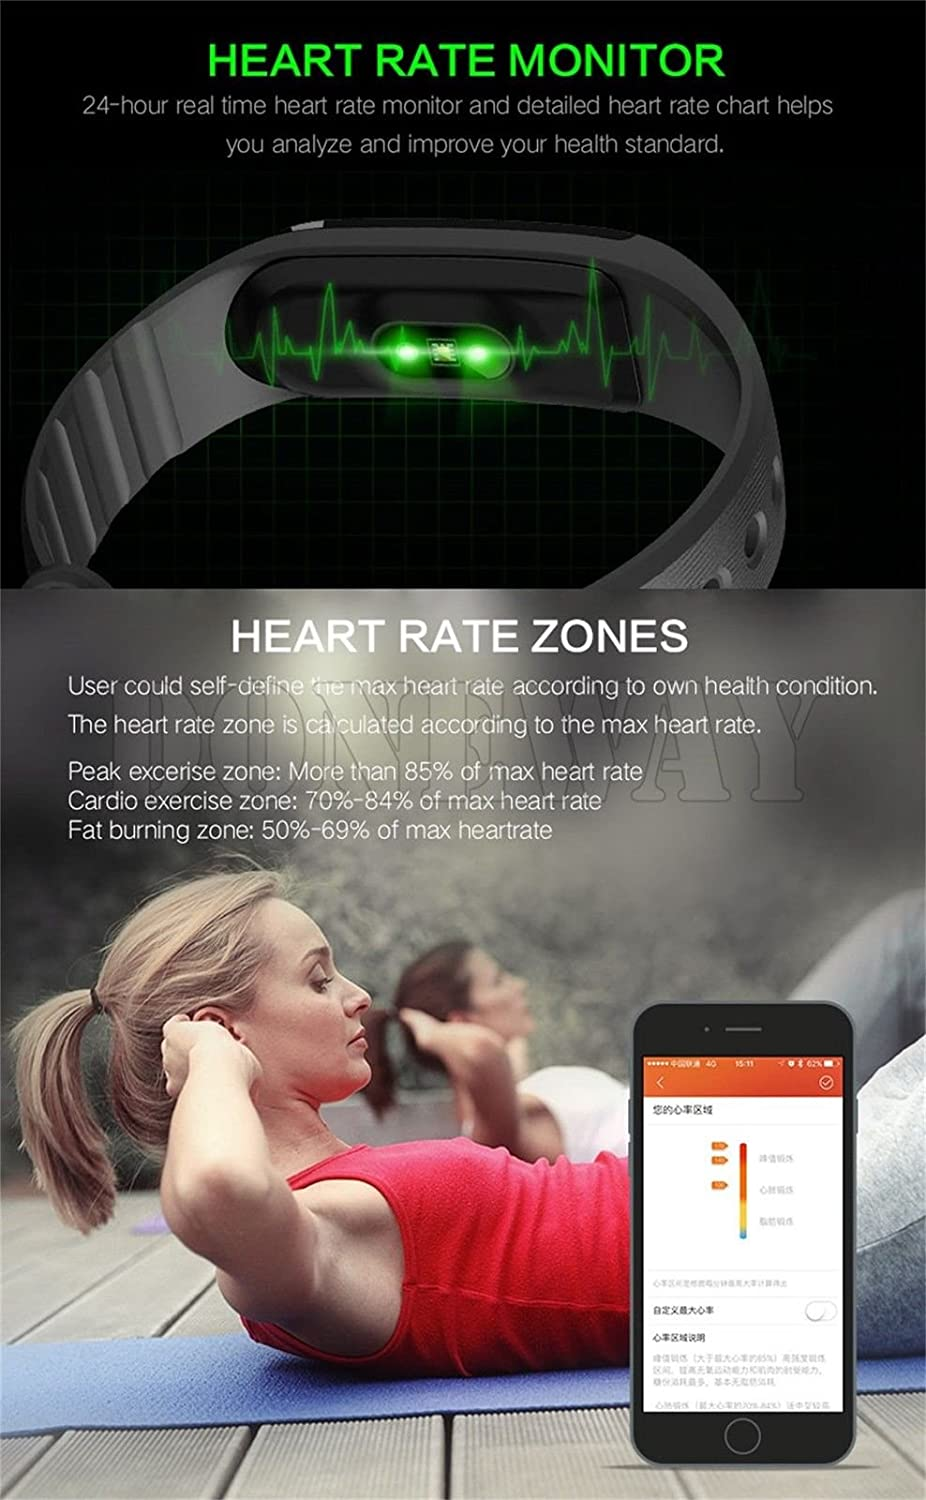 Amazon smart band heart rate monitor fitness activity tracker amazon smart band heart rate monitor fitness activity tracker touch screen watch step walking sleep counter wireless wristband pedometer exercise geenschuldenfo Choice Image